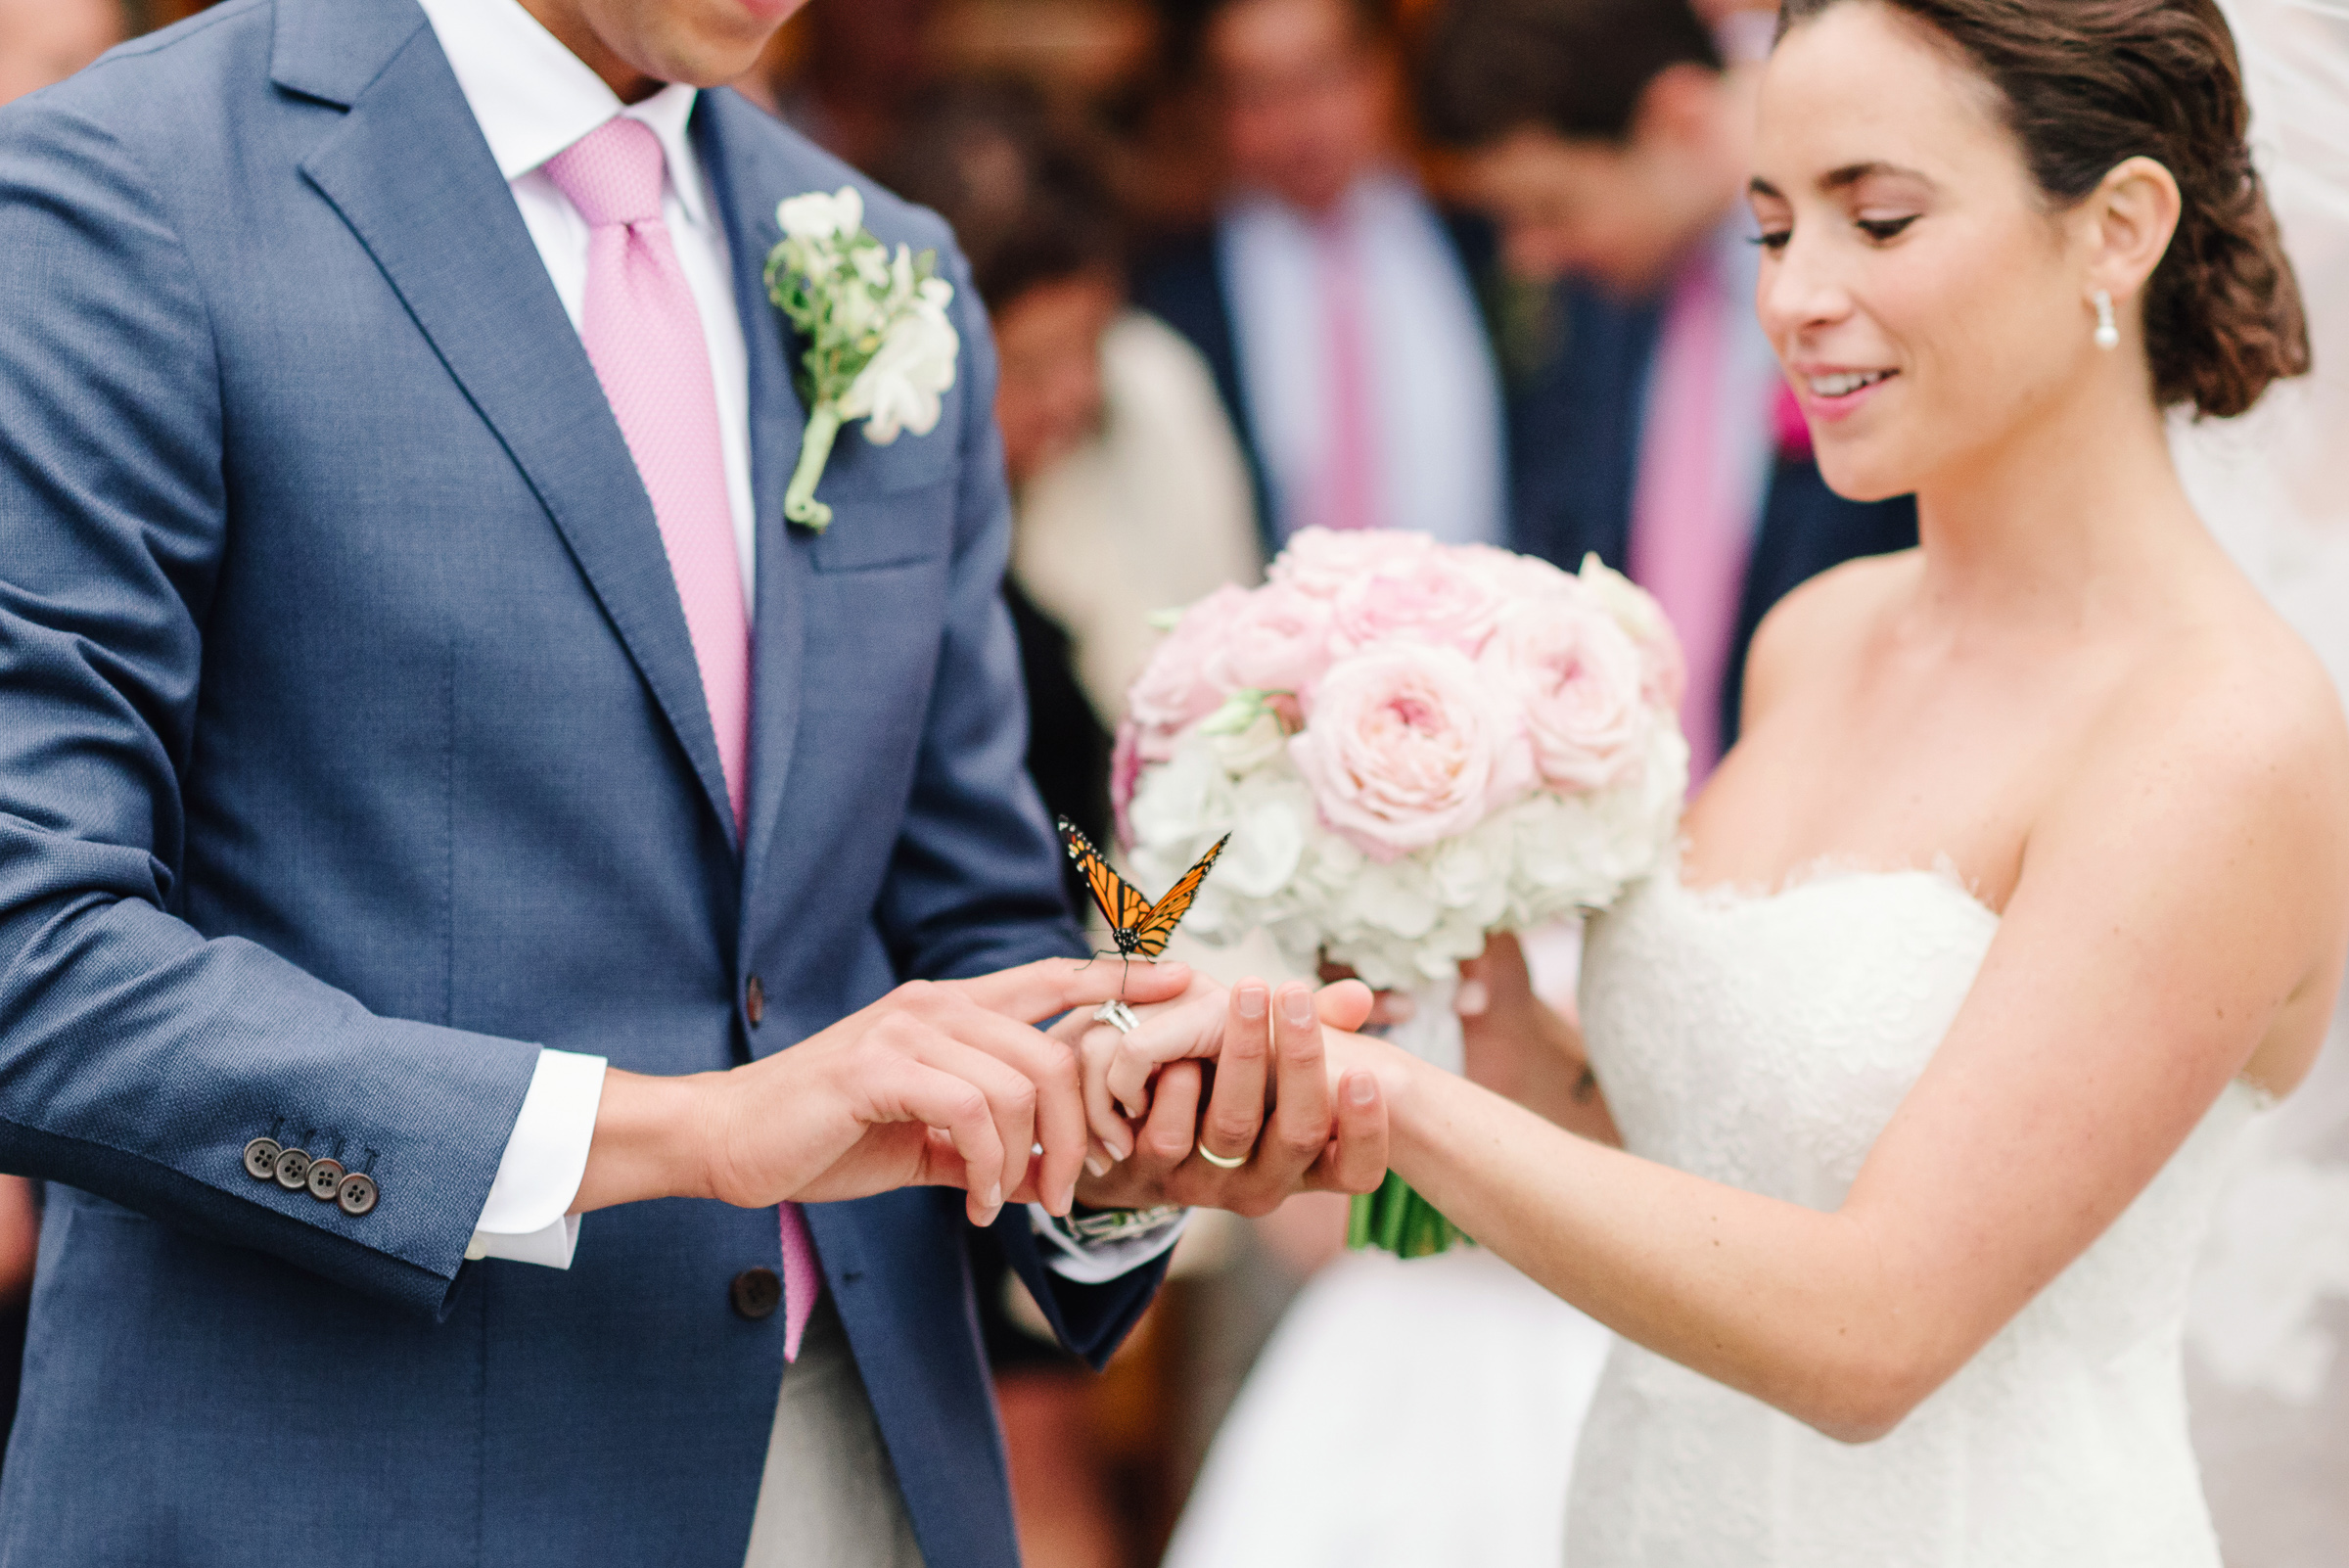 Butterfly lands on bride's finger during ring exchange - photo by Zofia & Co Photography - Nantucket